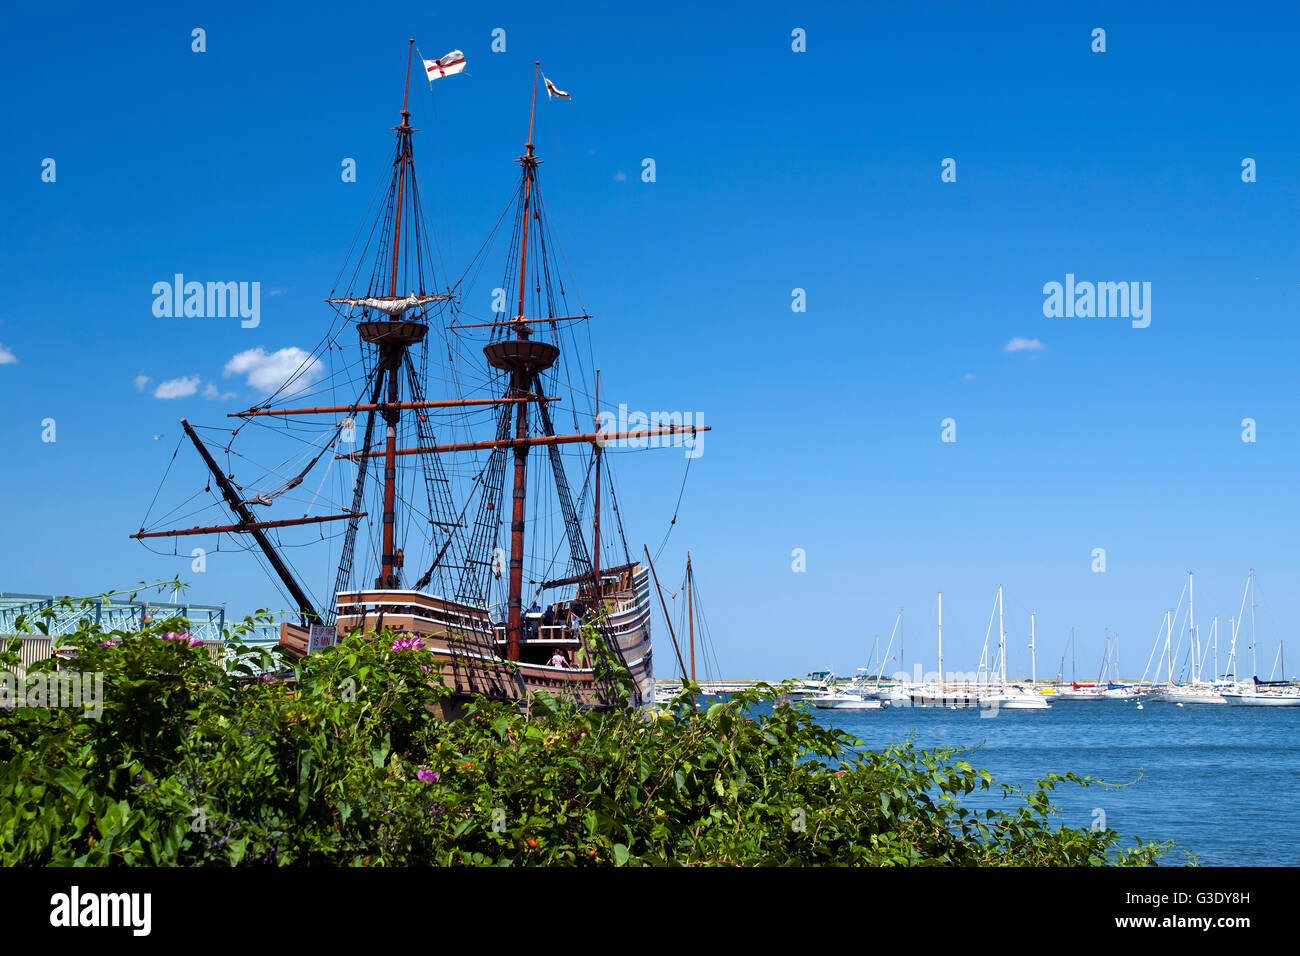 The replica of the Mayflower, named the Mayflower II lies in Plymouth Harbor in Massachusetts and is a favorite Stock Photo